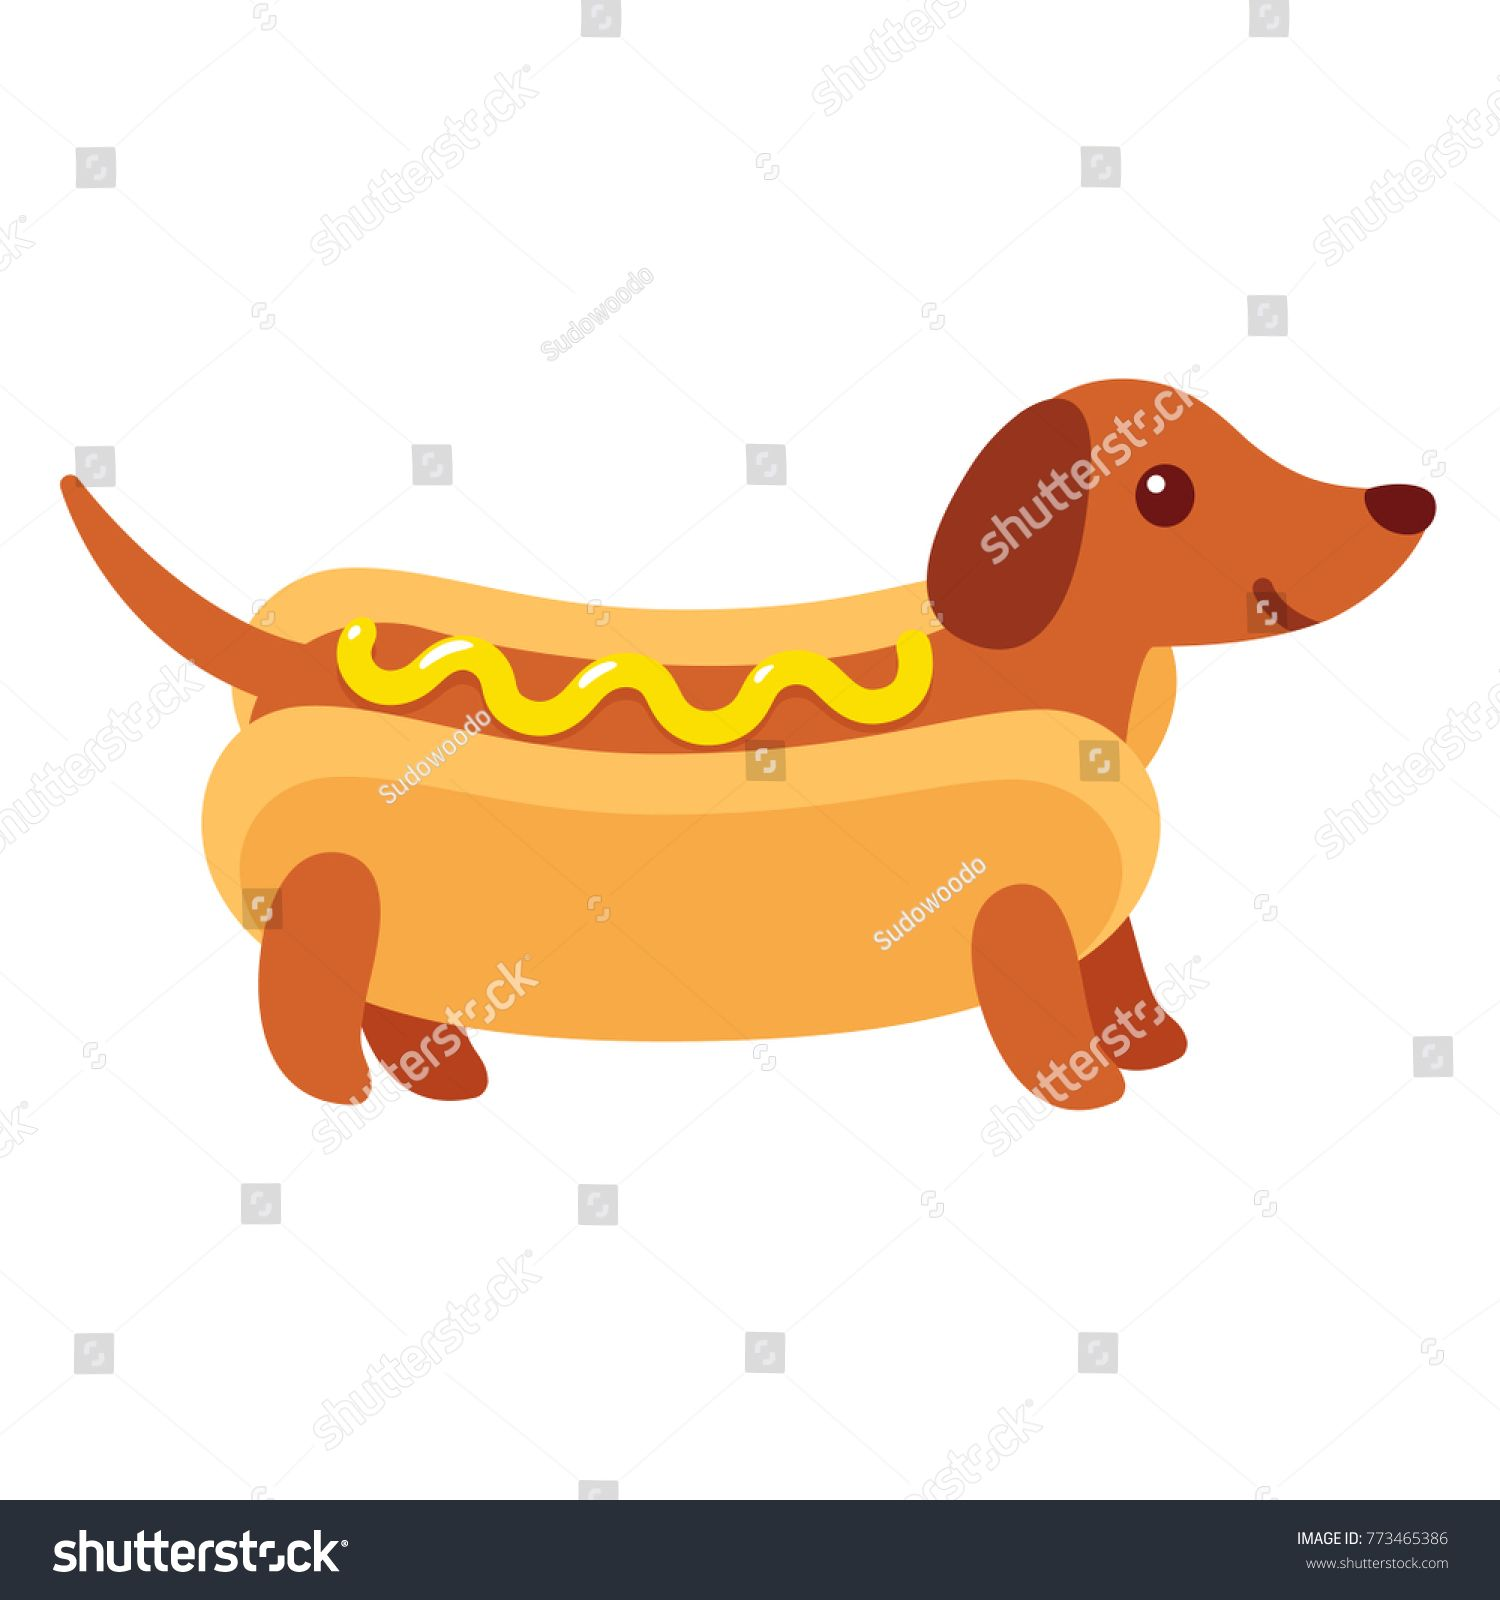 Dachshund Puppy In Hot Dog Bun With Mustard Funny Cartoon Drawing